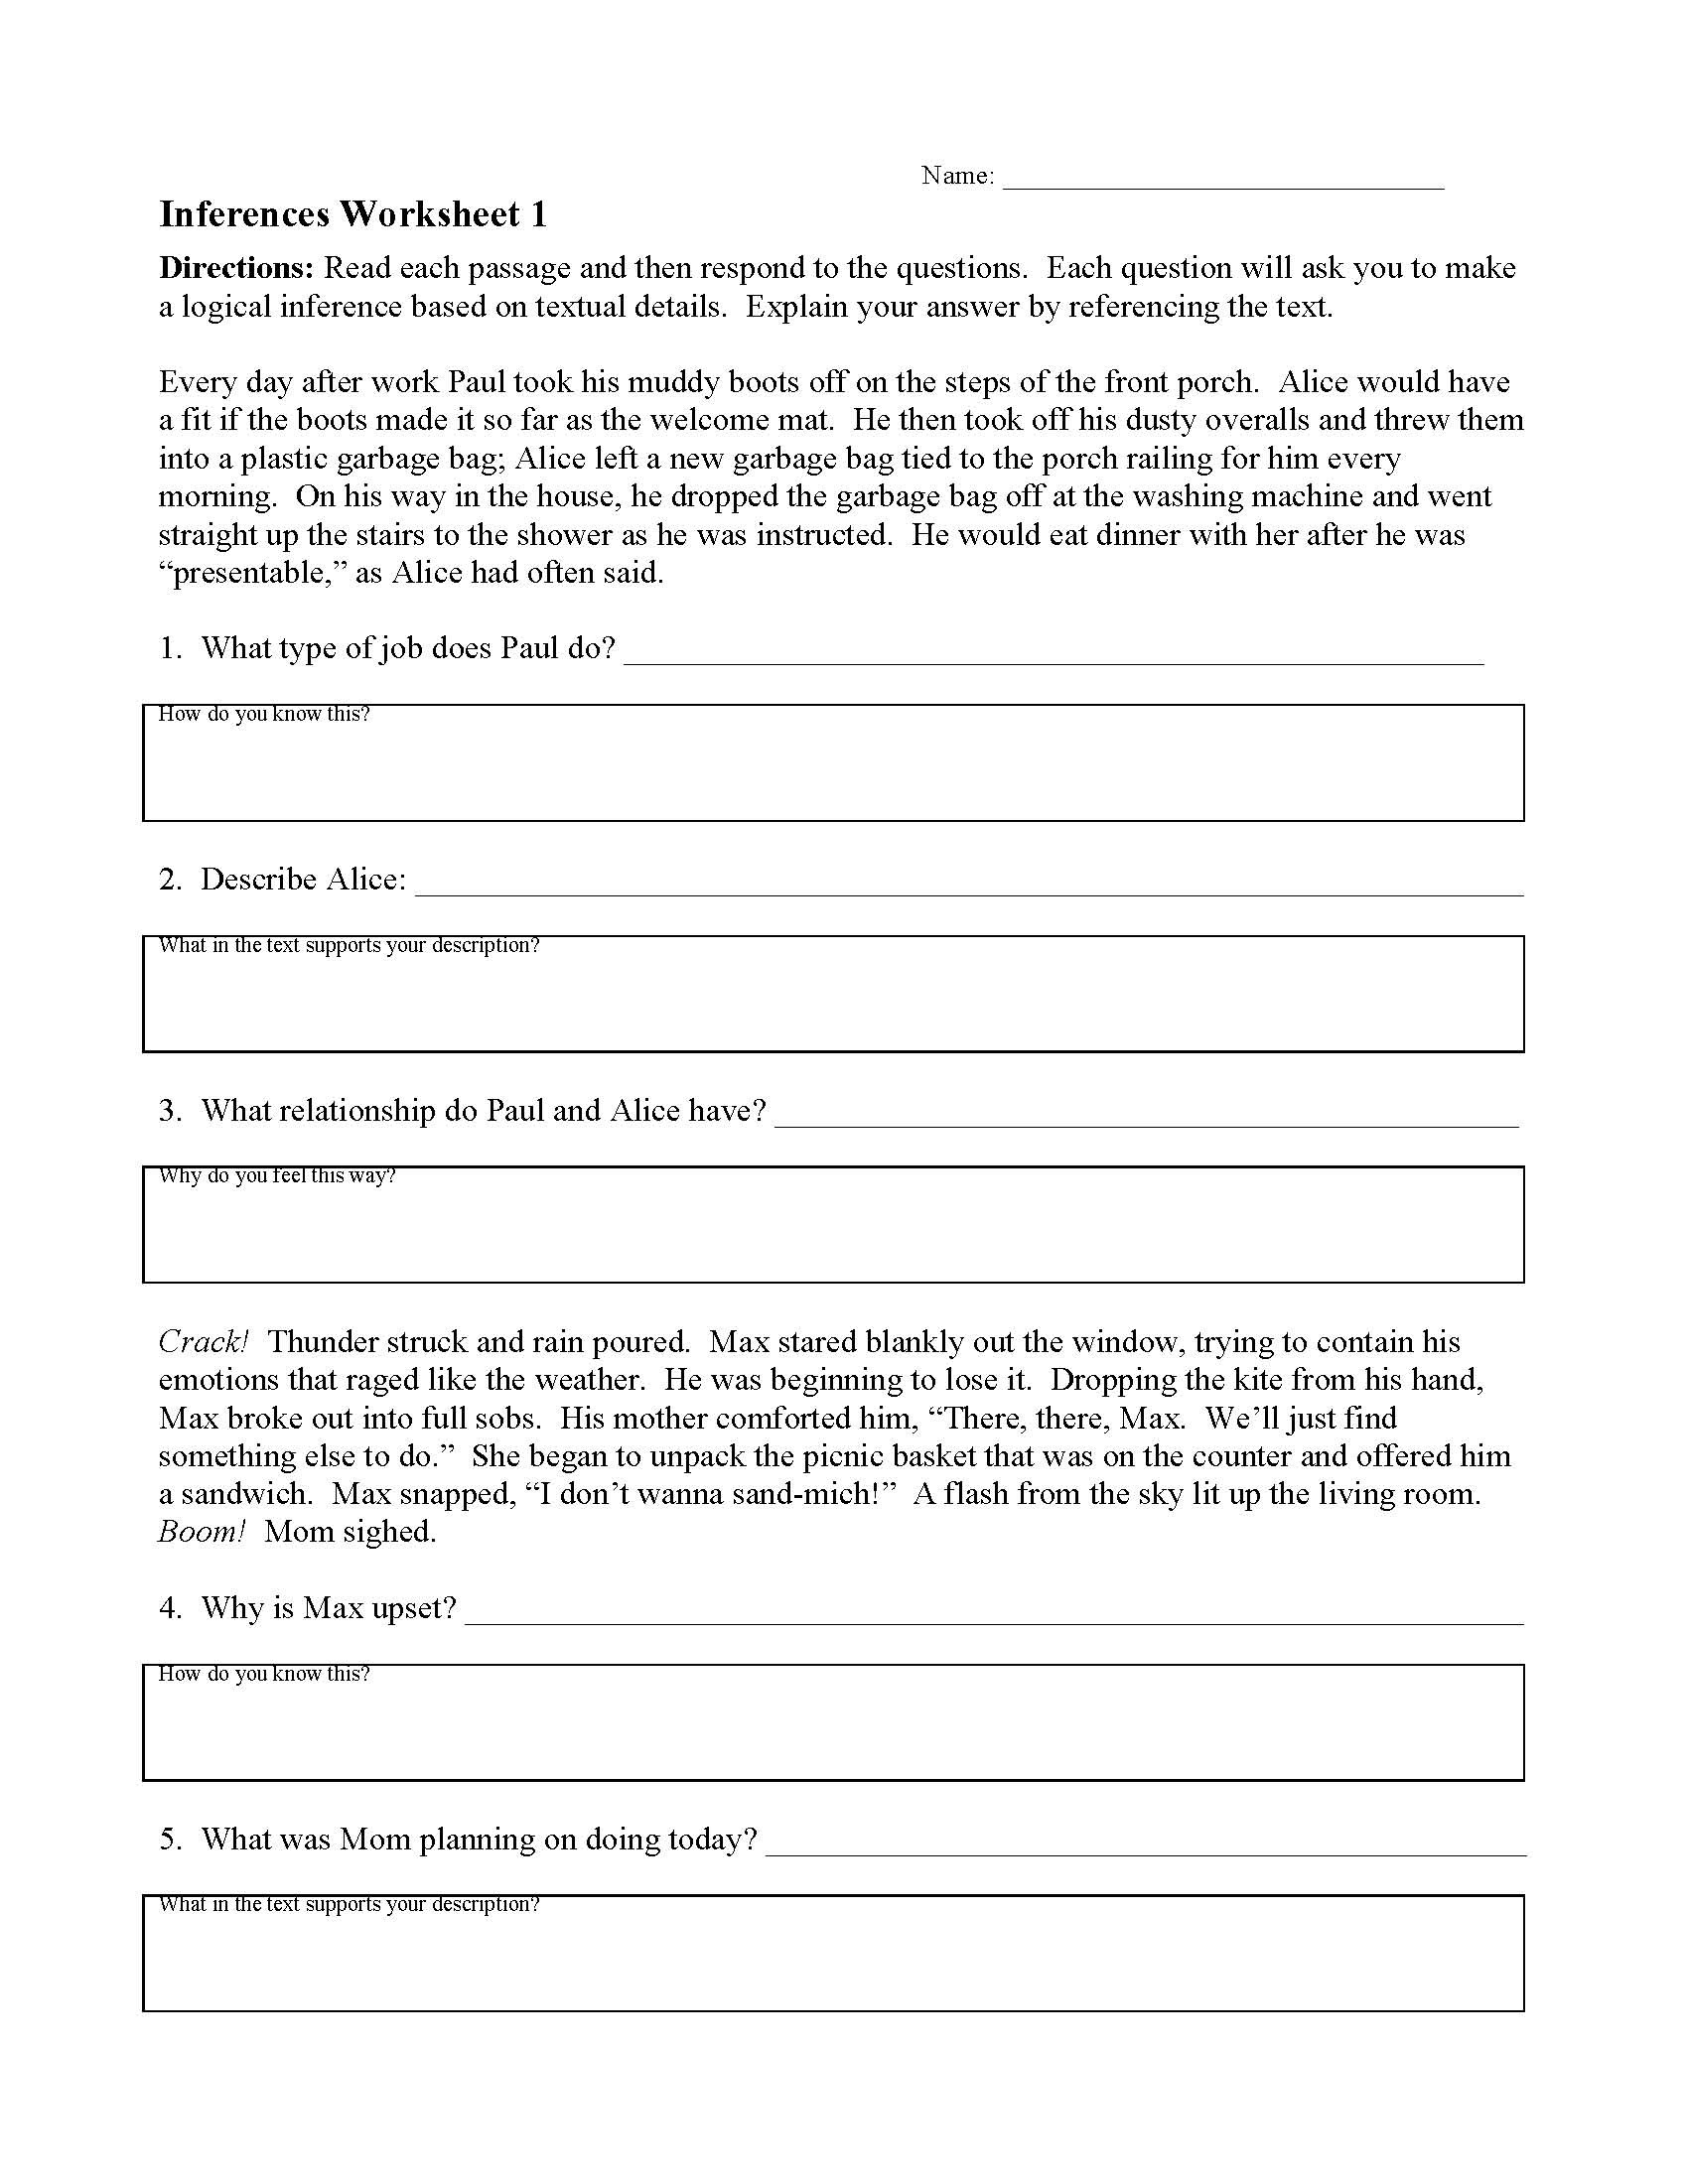 Making Inference Worksheets 4th Grade Inferences Worksheets